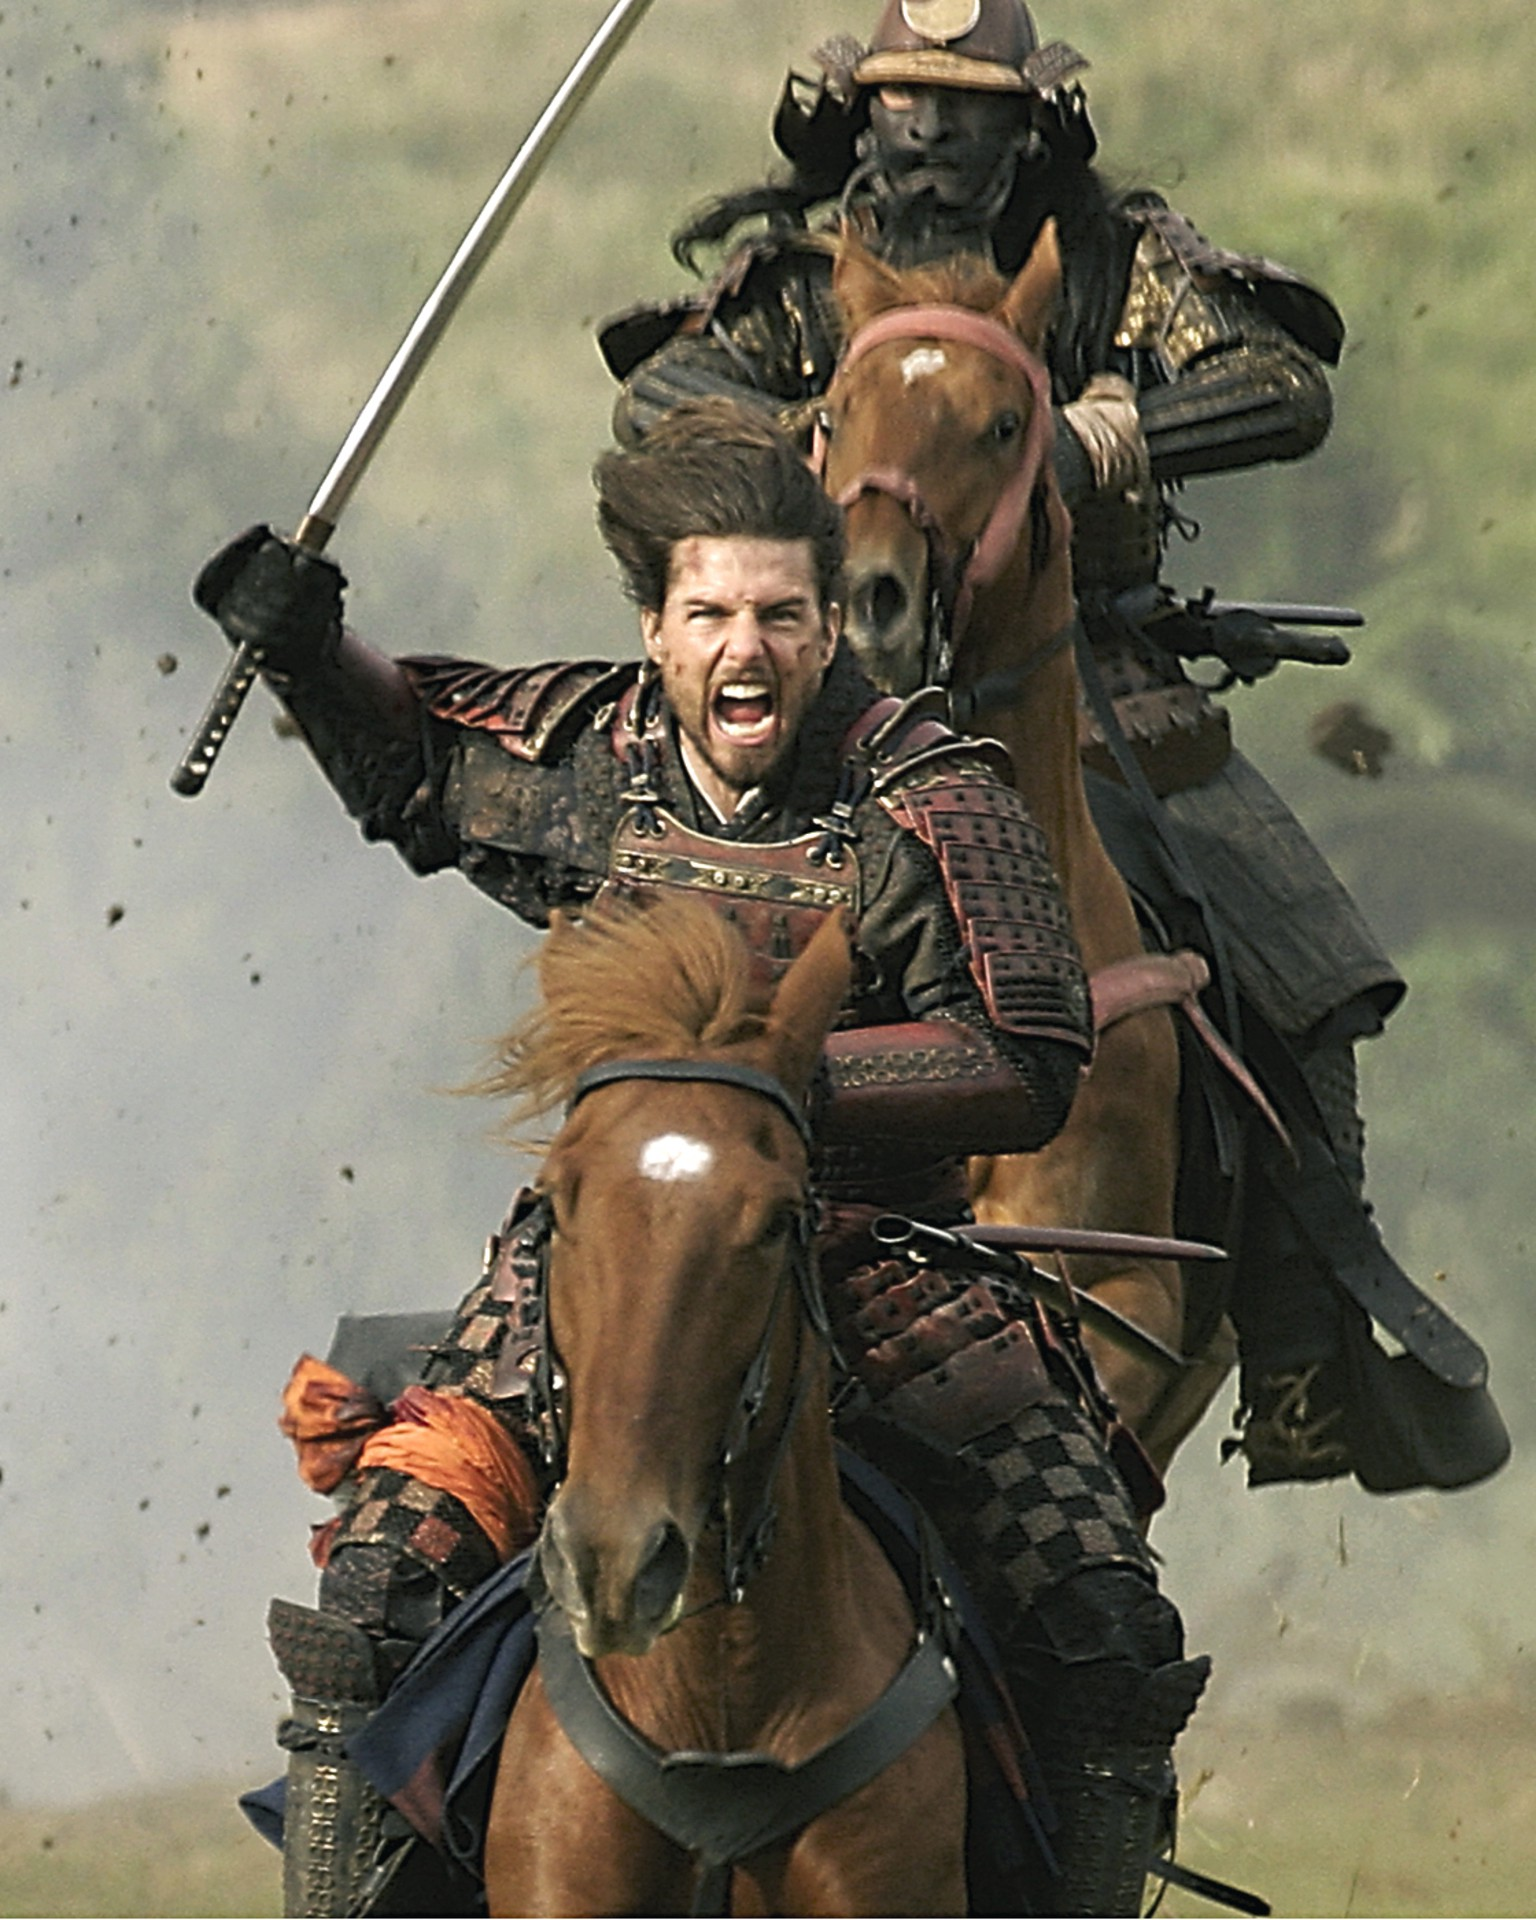 cultural analysis of the last samurai The last samurai - the movie, the last samurai, filled the theatres in 2003 with its suspenseful plot, exciting battle sequences and historical reference within the script.